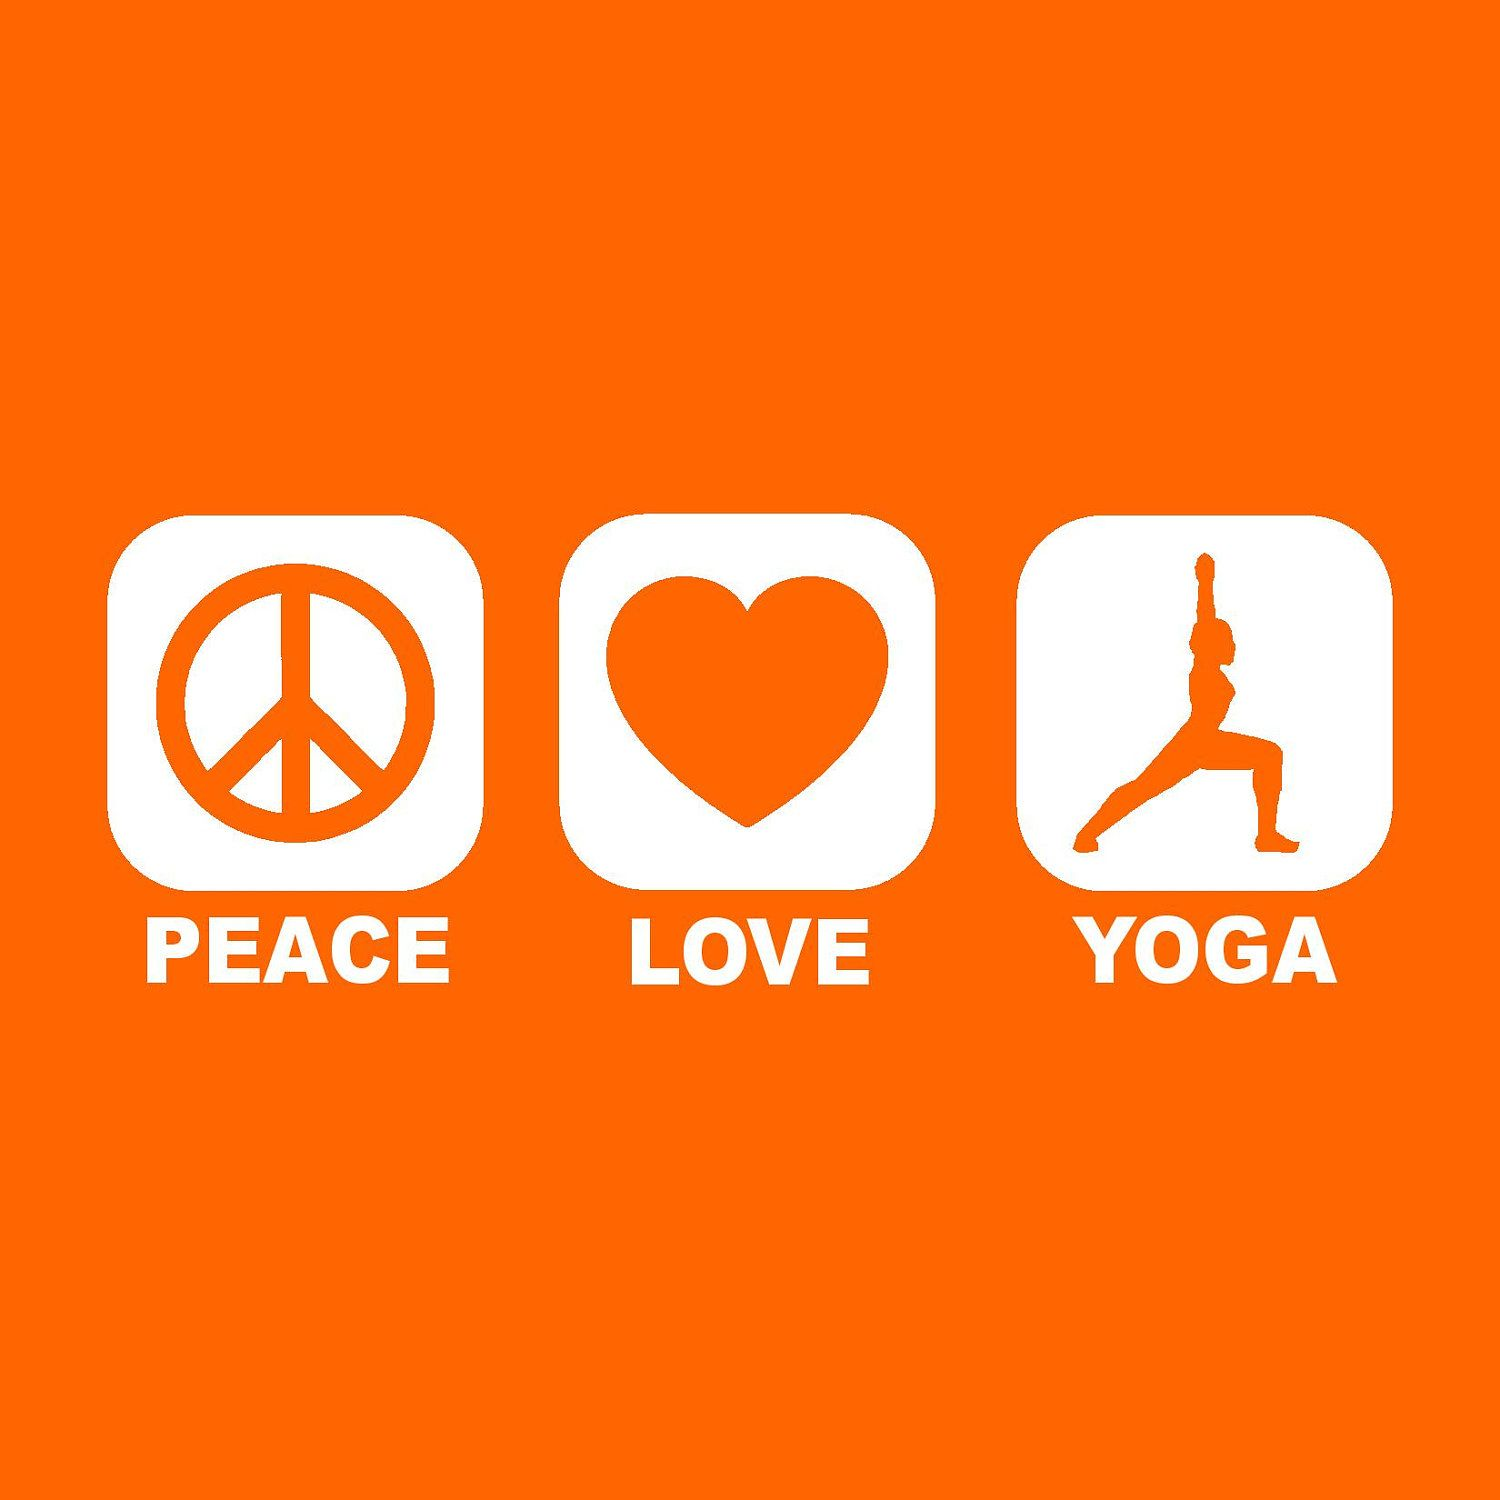 LIKE if you practiced #yoga today :) - To sign up for #yoga classes at Spirit of Yoga, go to spiritofyoga.com